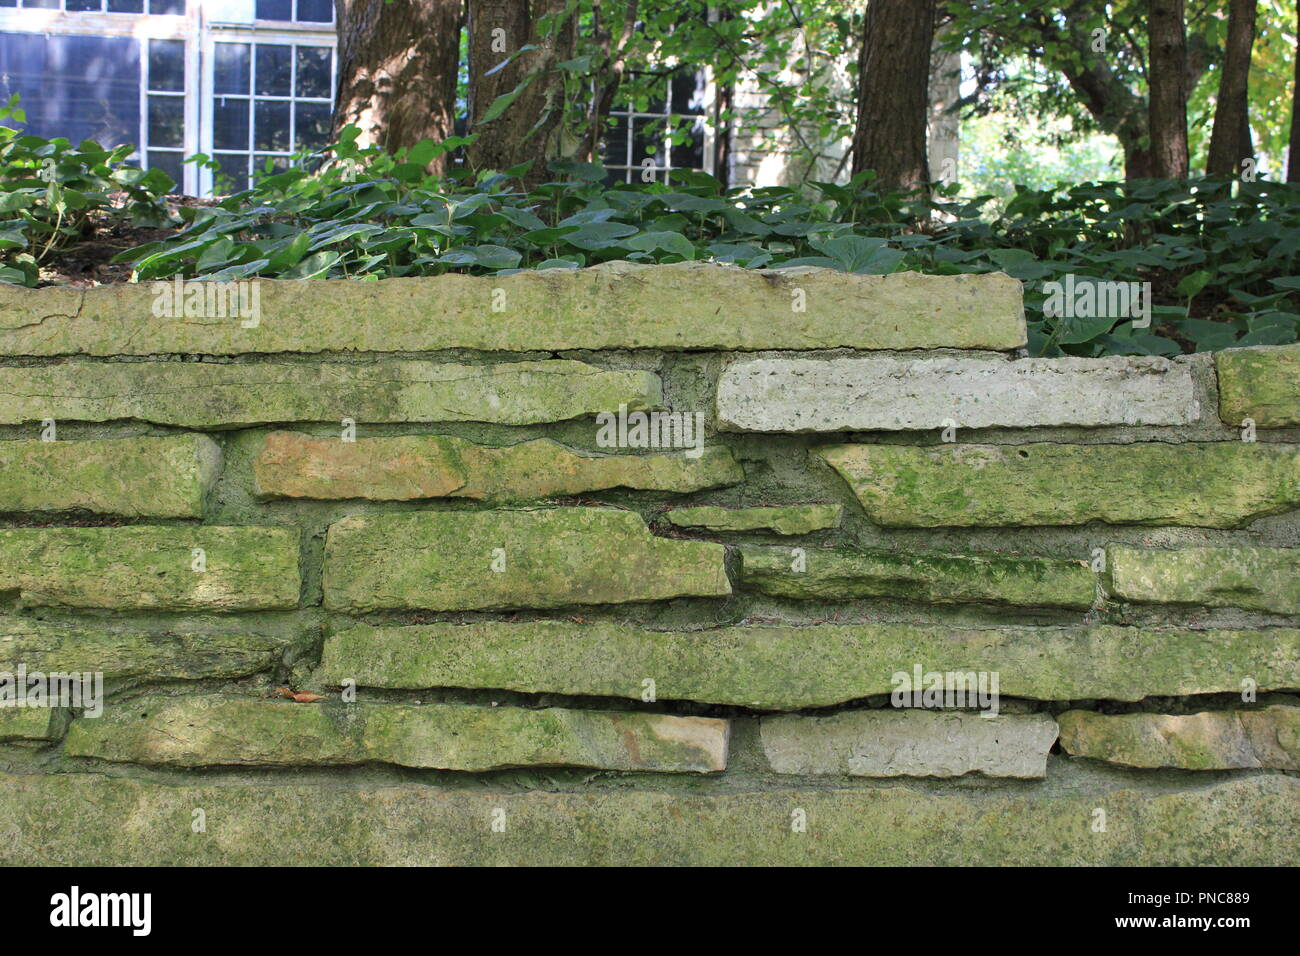 Evanston Historical Society weathered limestone garden wall located on Lake Michigan lakefront property. - Stock Image